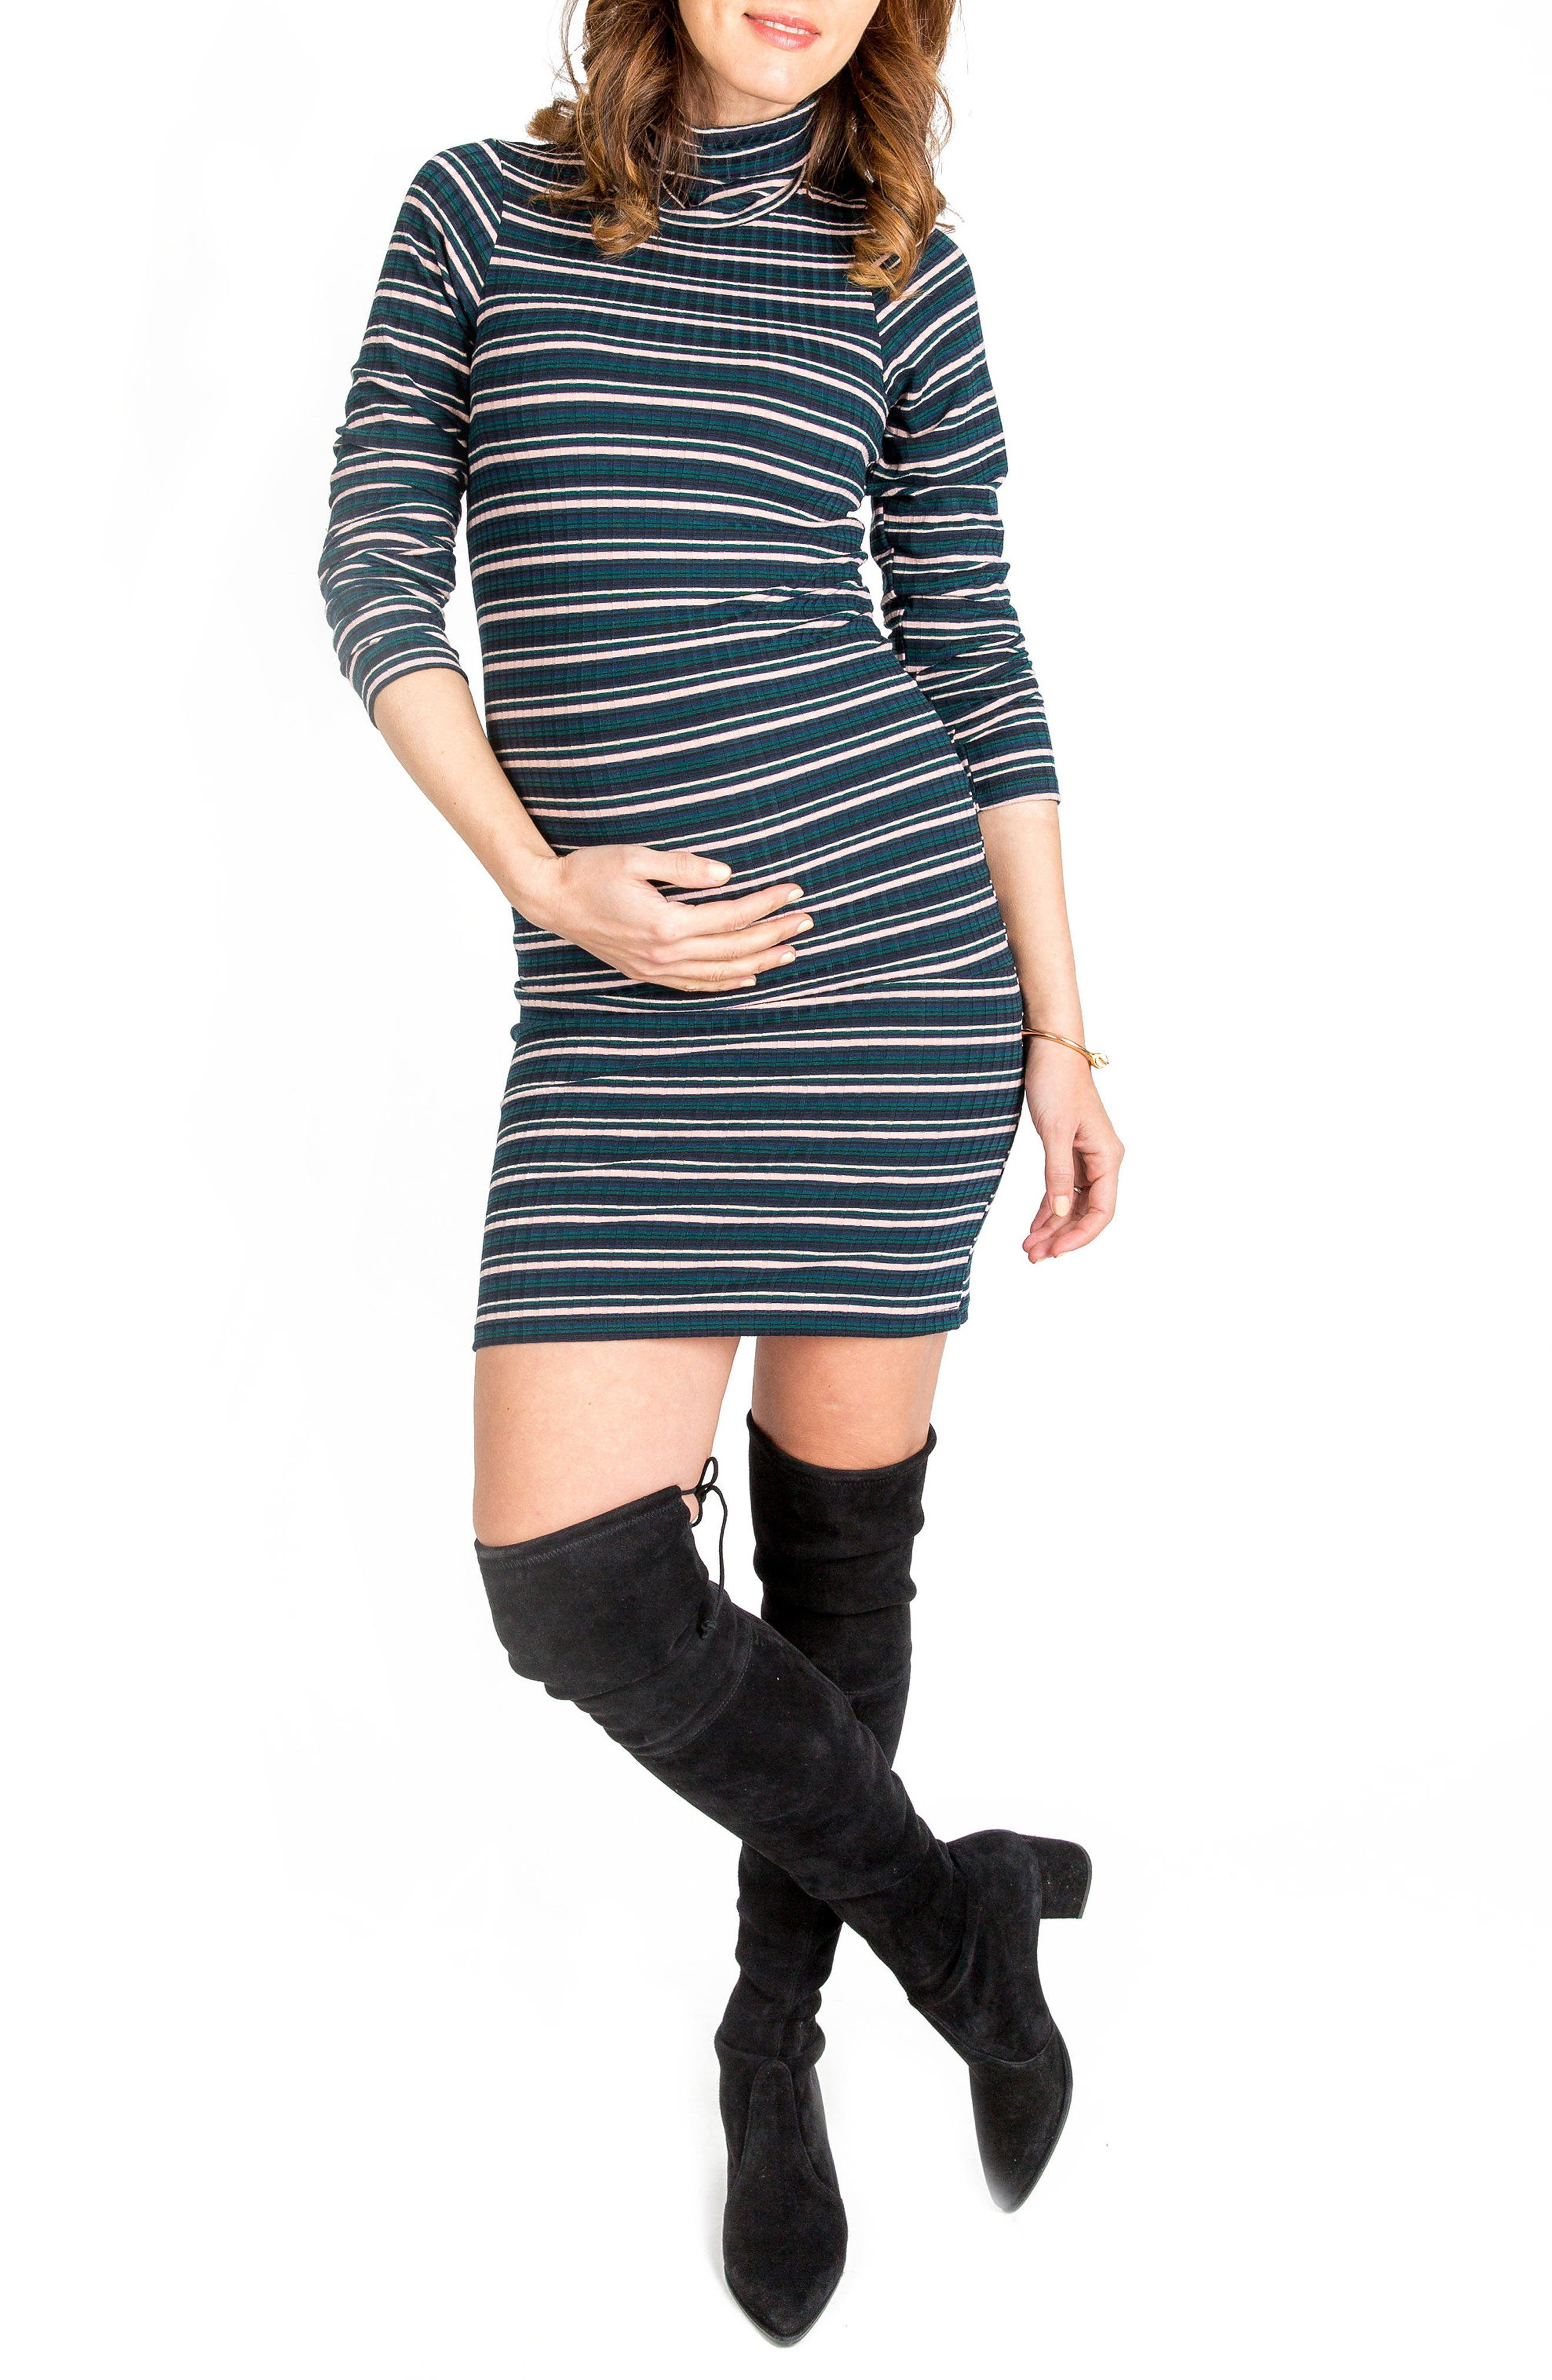 Main Image - Nom Maternity Talya Turtleneck Maternity Dress